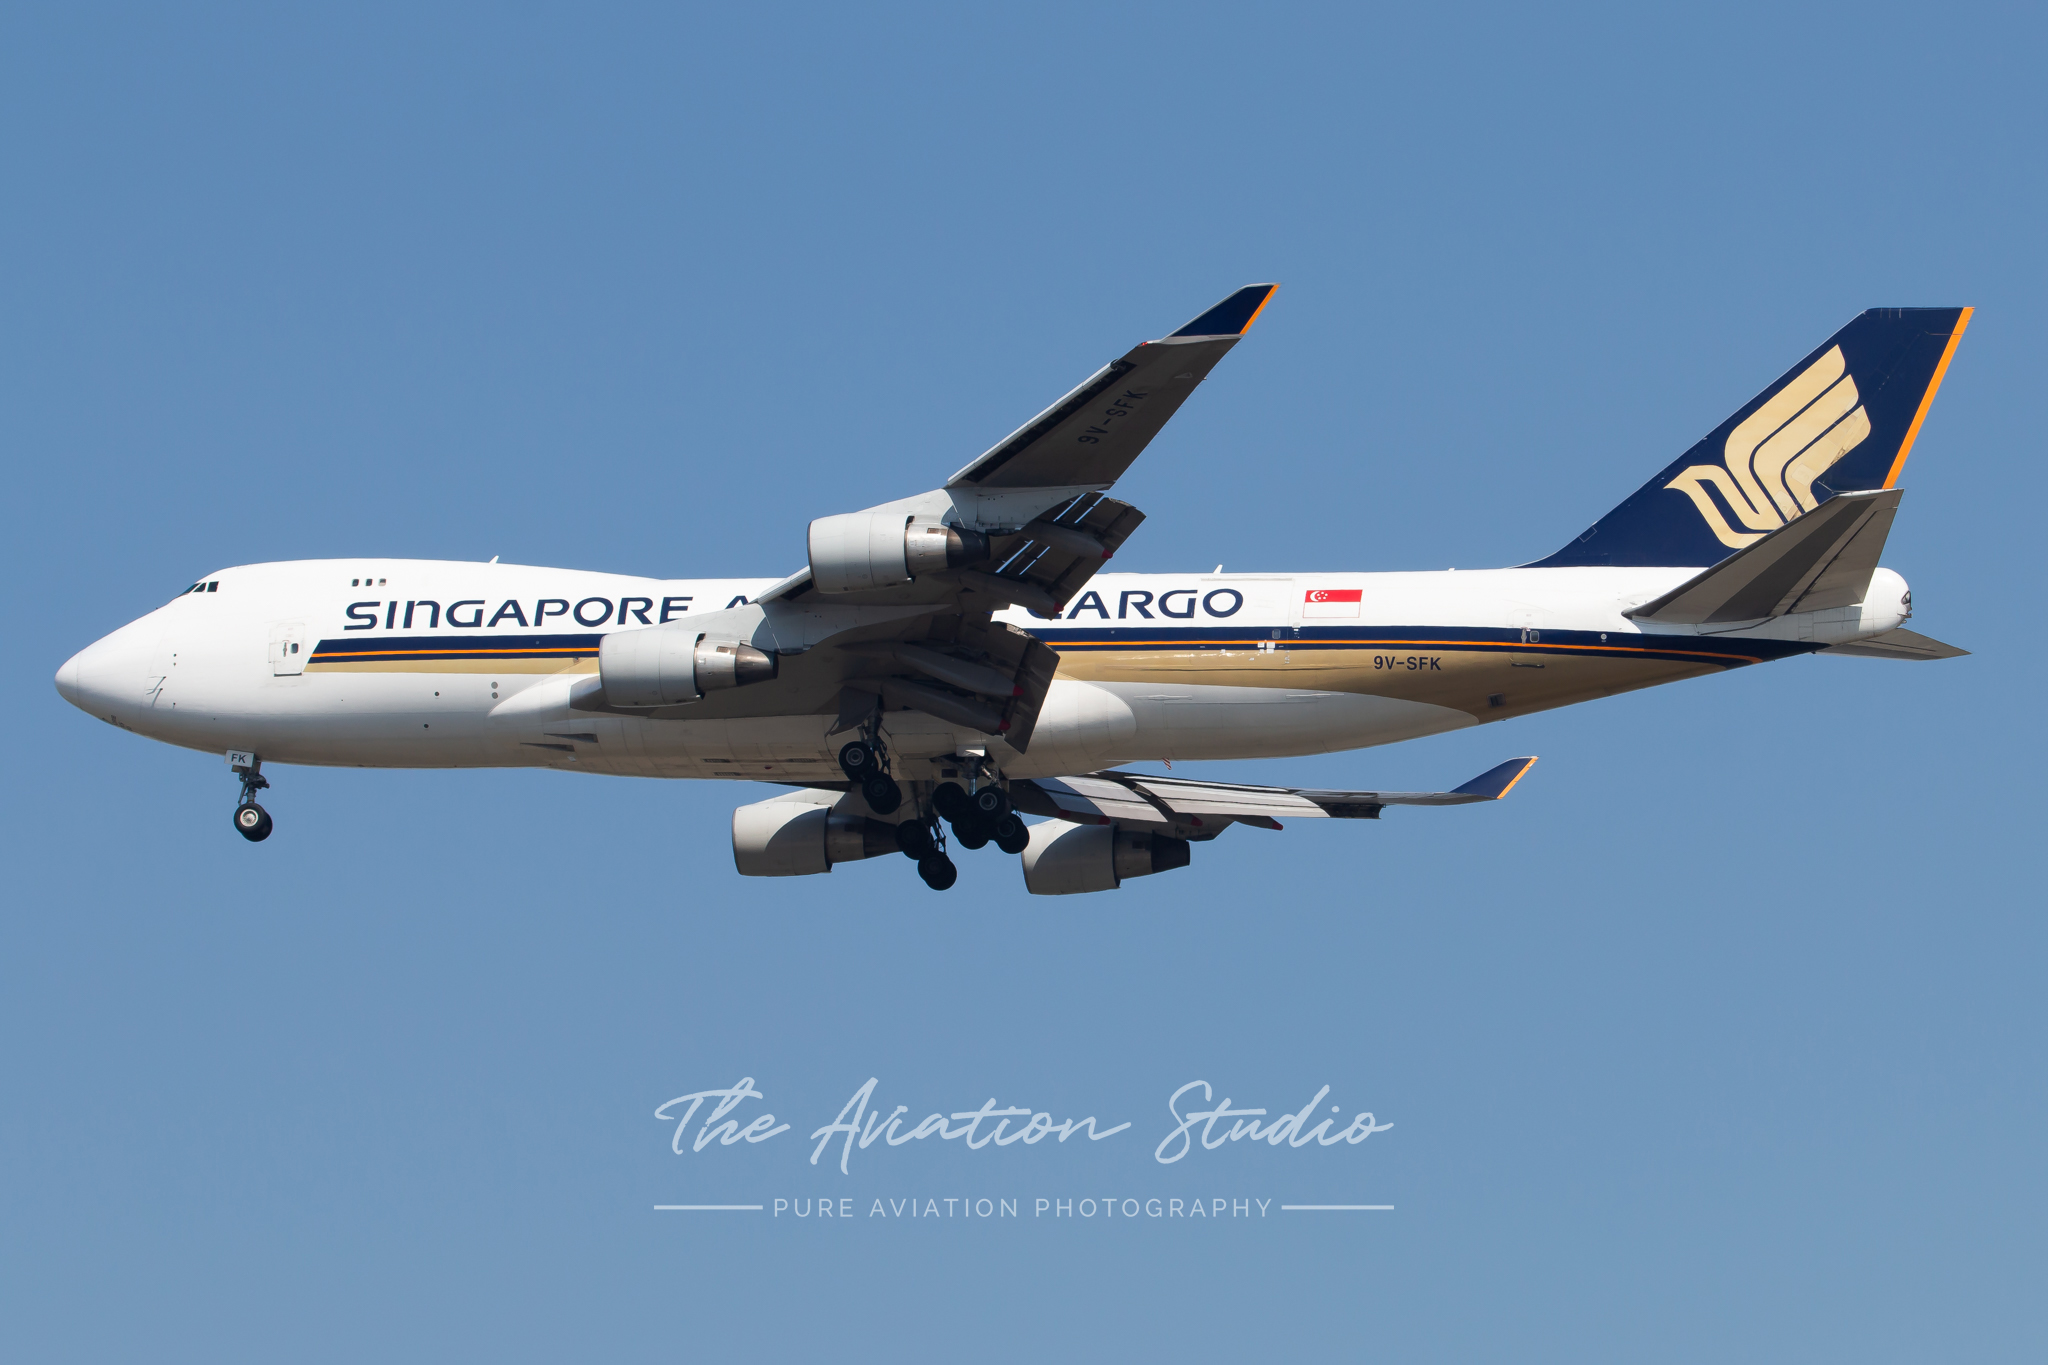 Singapore Airlines Boeing 747-400 carrying U2 world tour equipment.